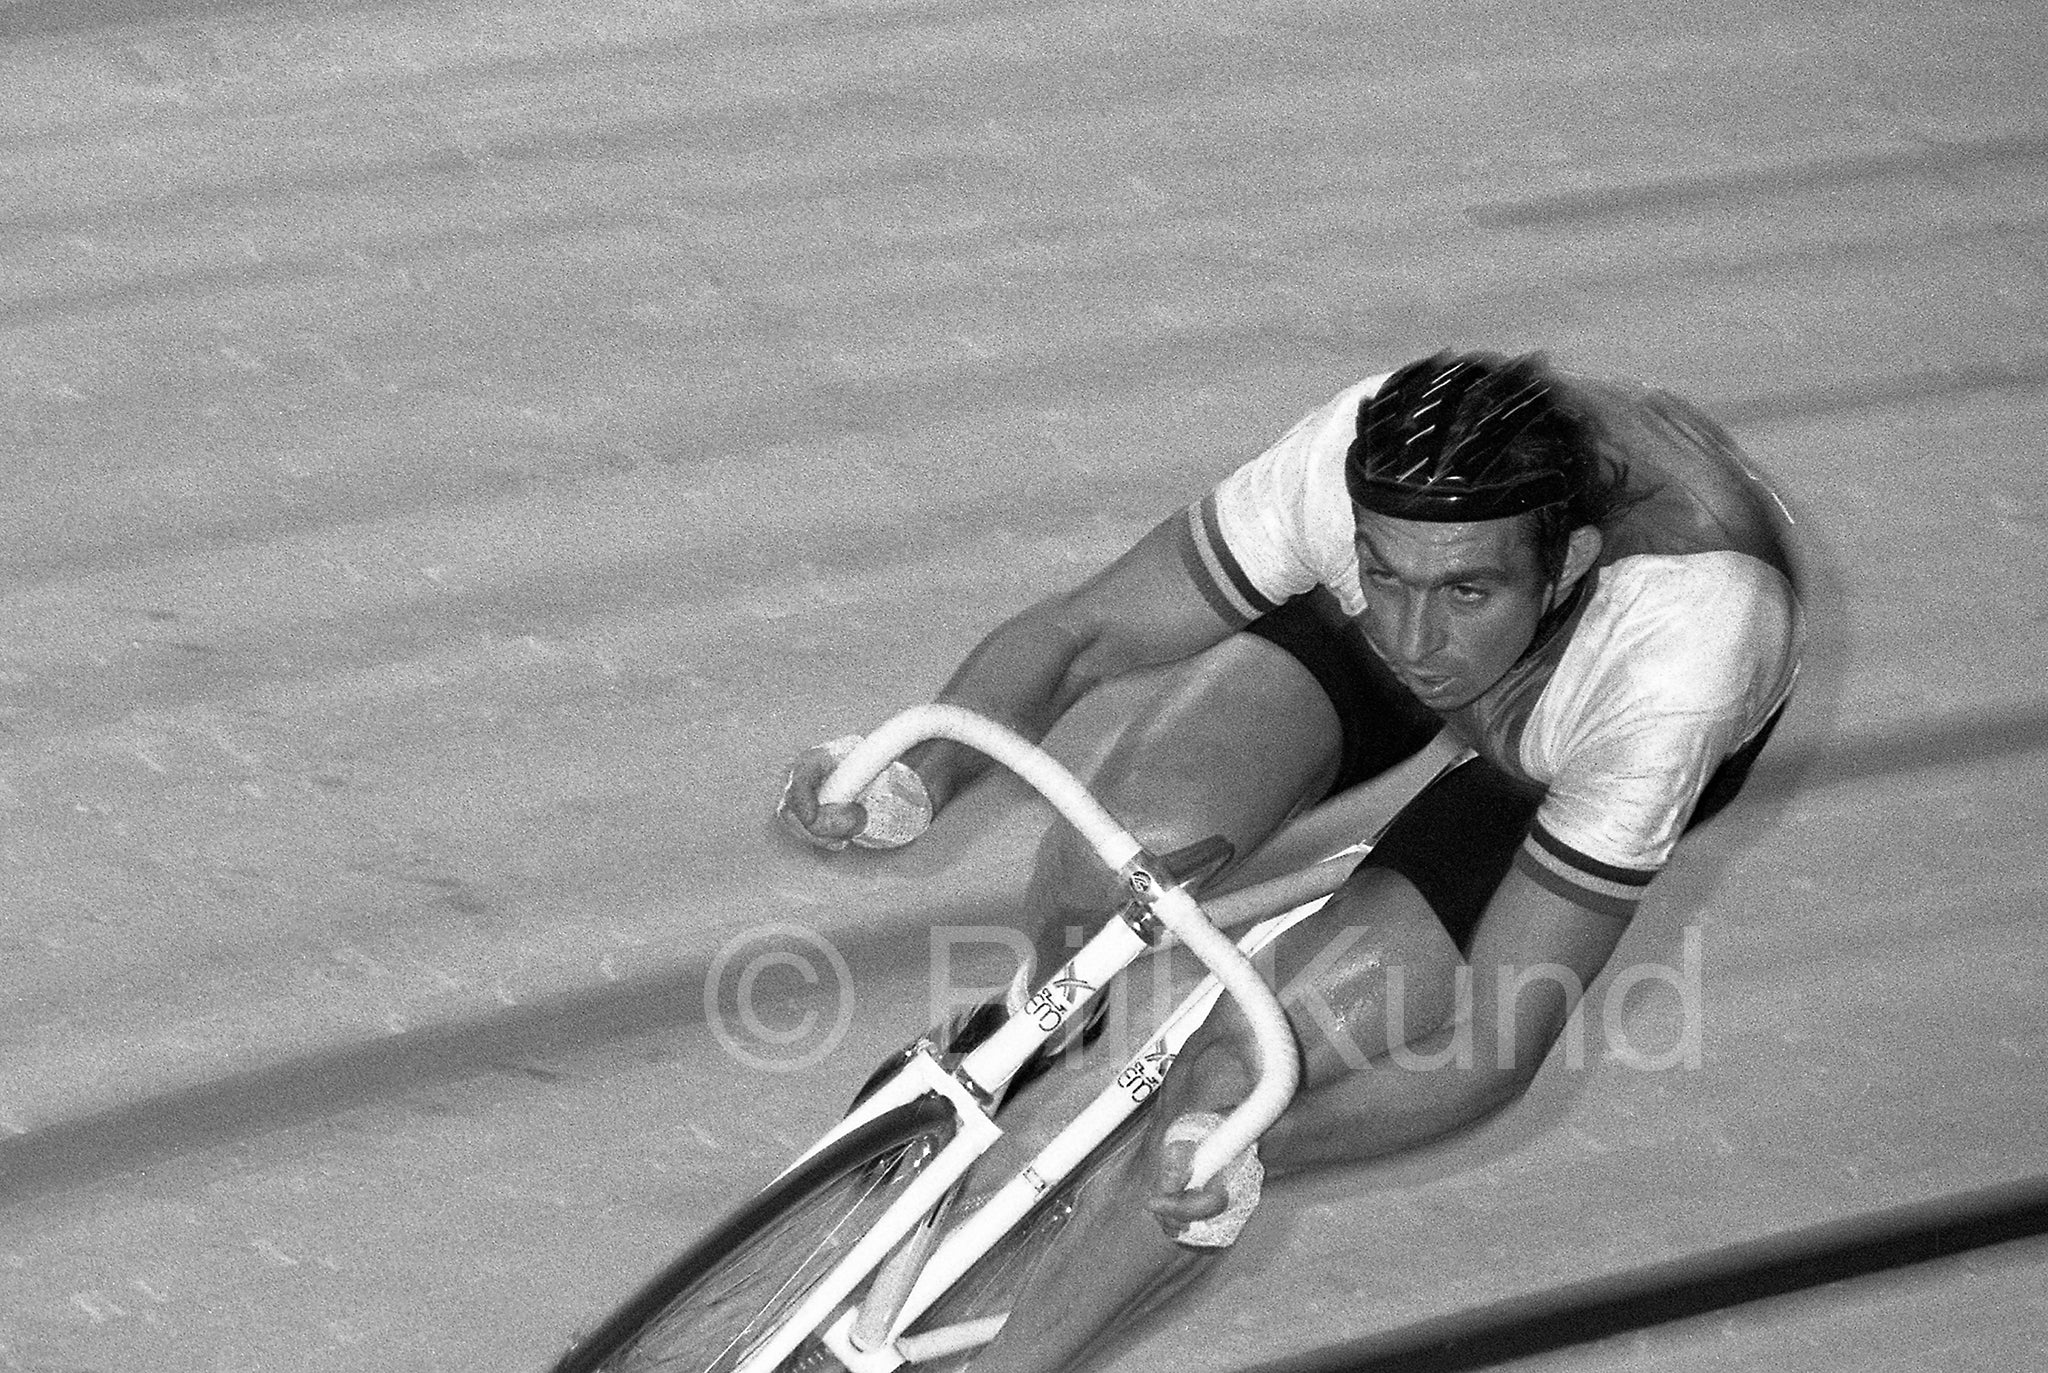 011 - Patrick Sercu, Gold Medalist in the 1964 Tokyo Olympics, rides a 1 lap time trial.